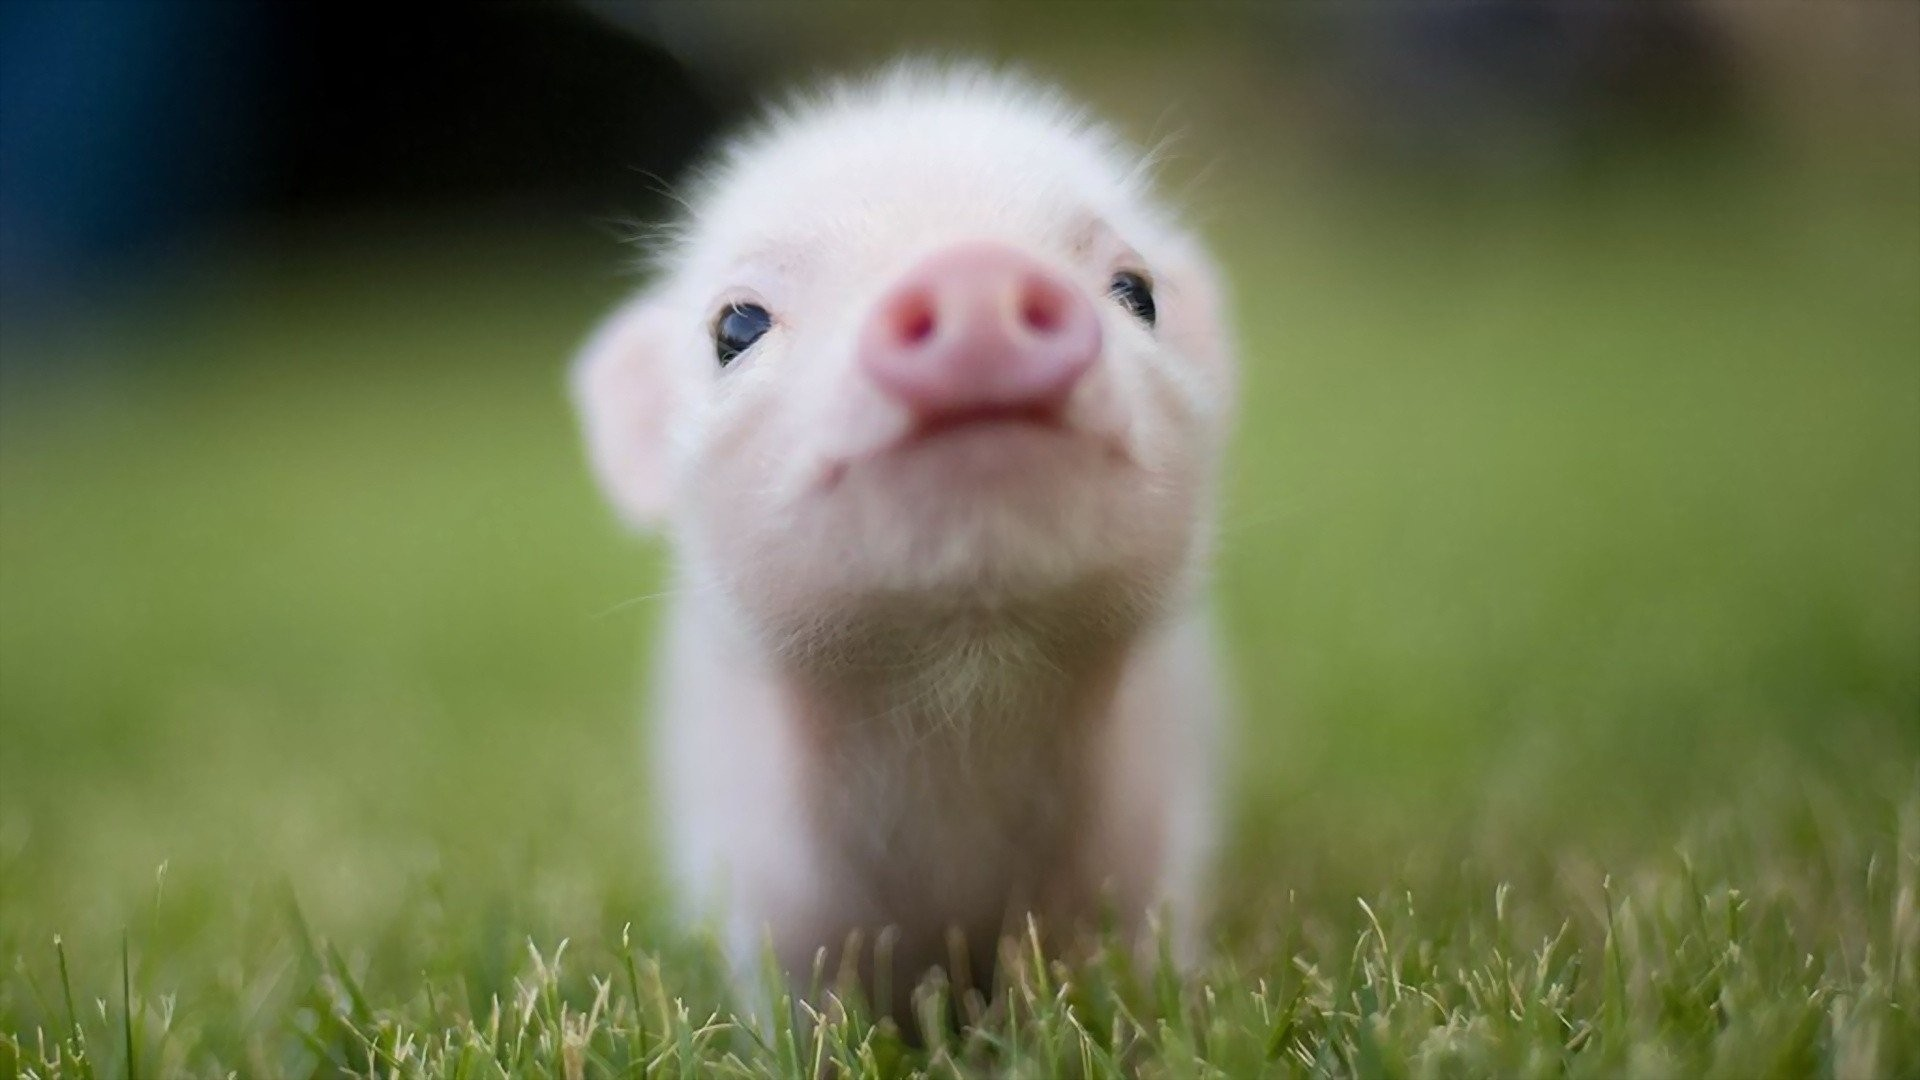 Res: 1920x1080, HD Wallpaper | Background Image ID:235985.  Animal Pig